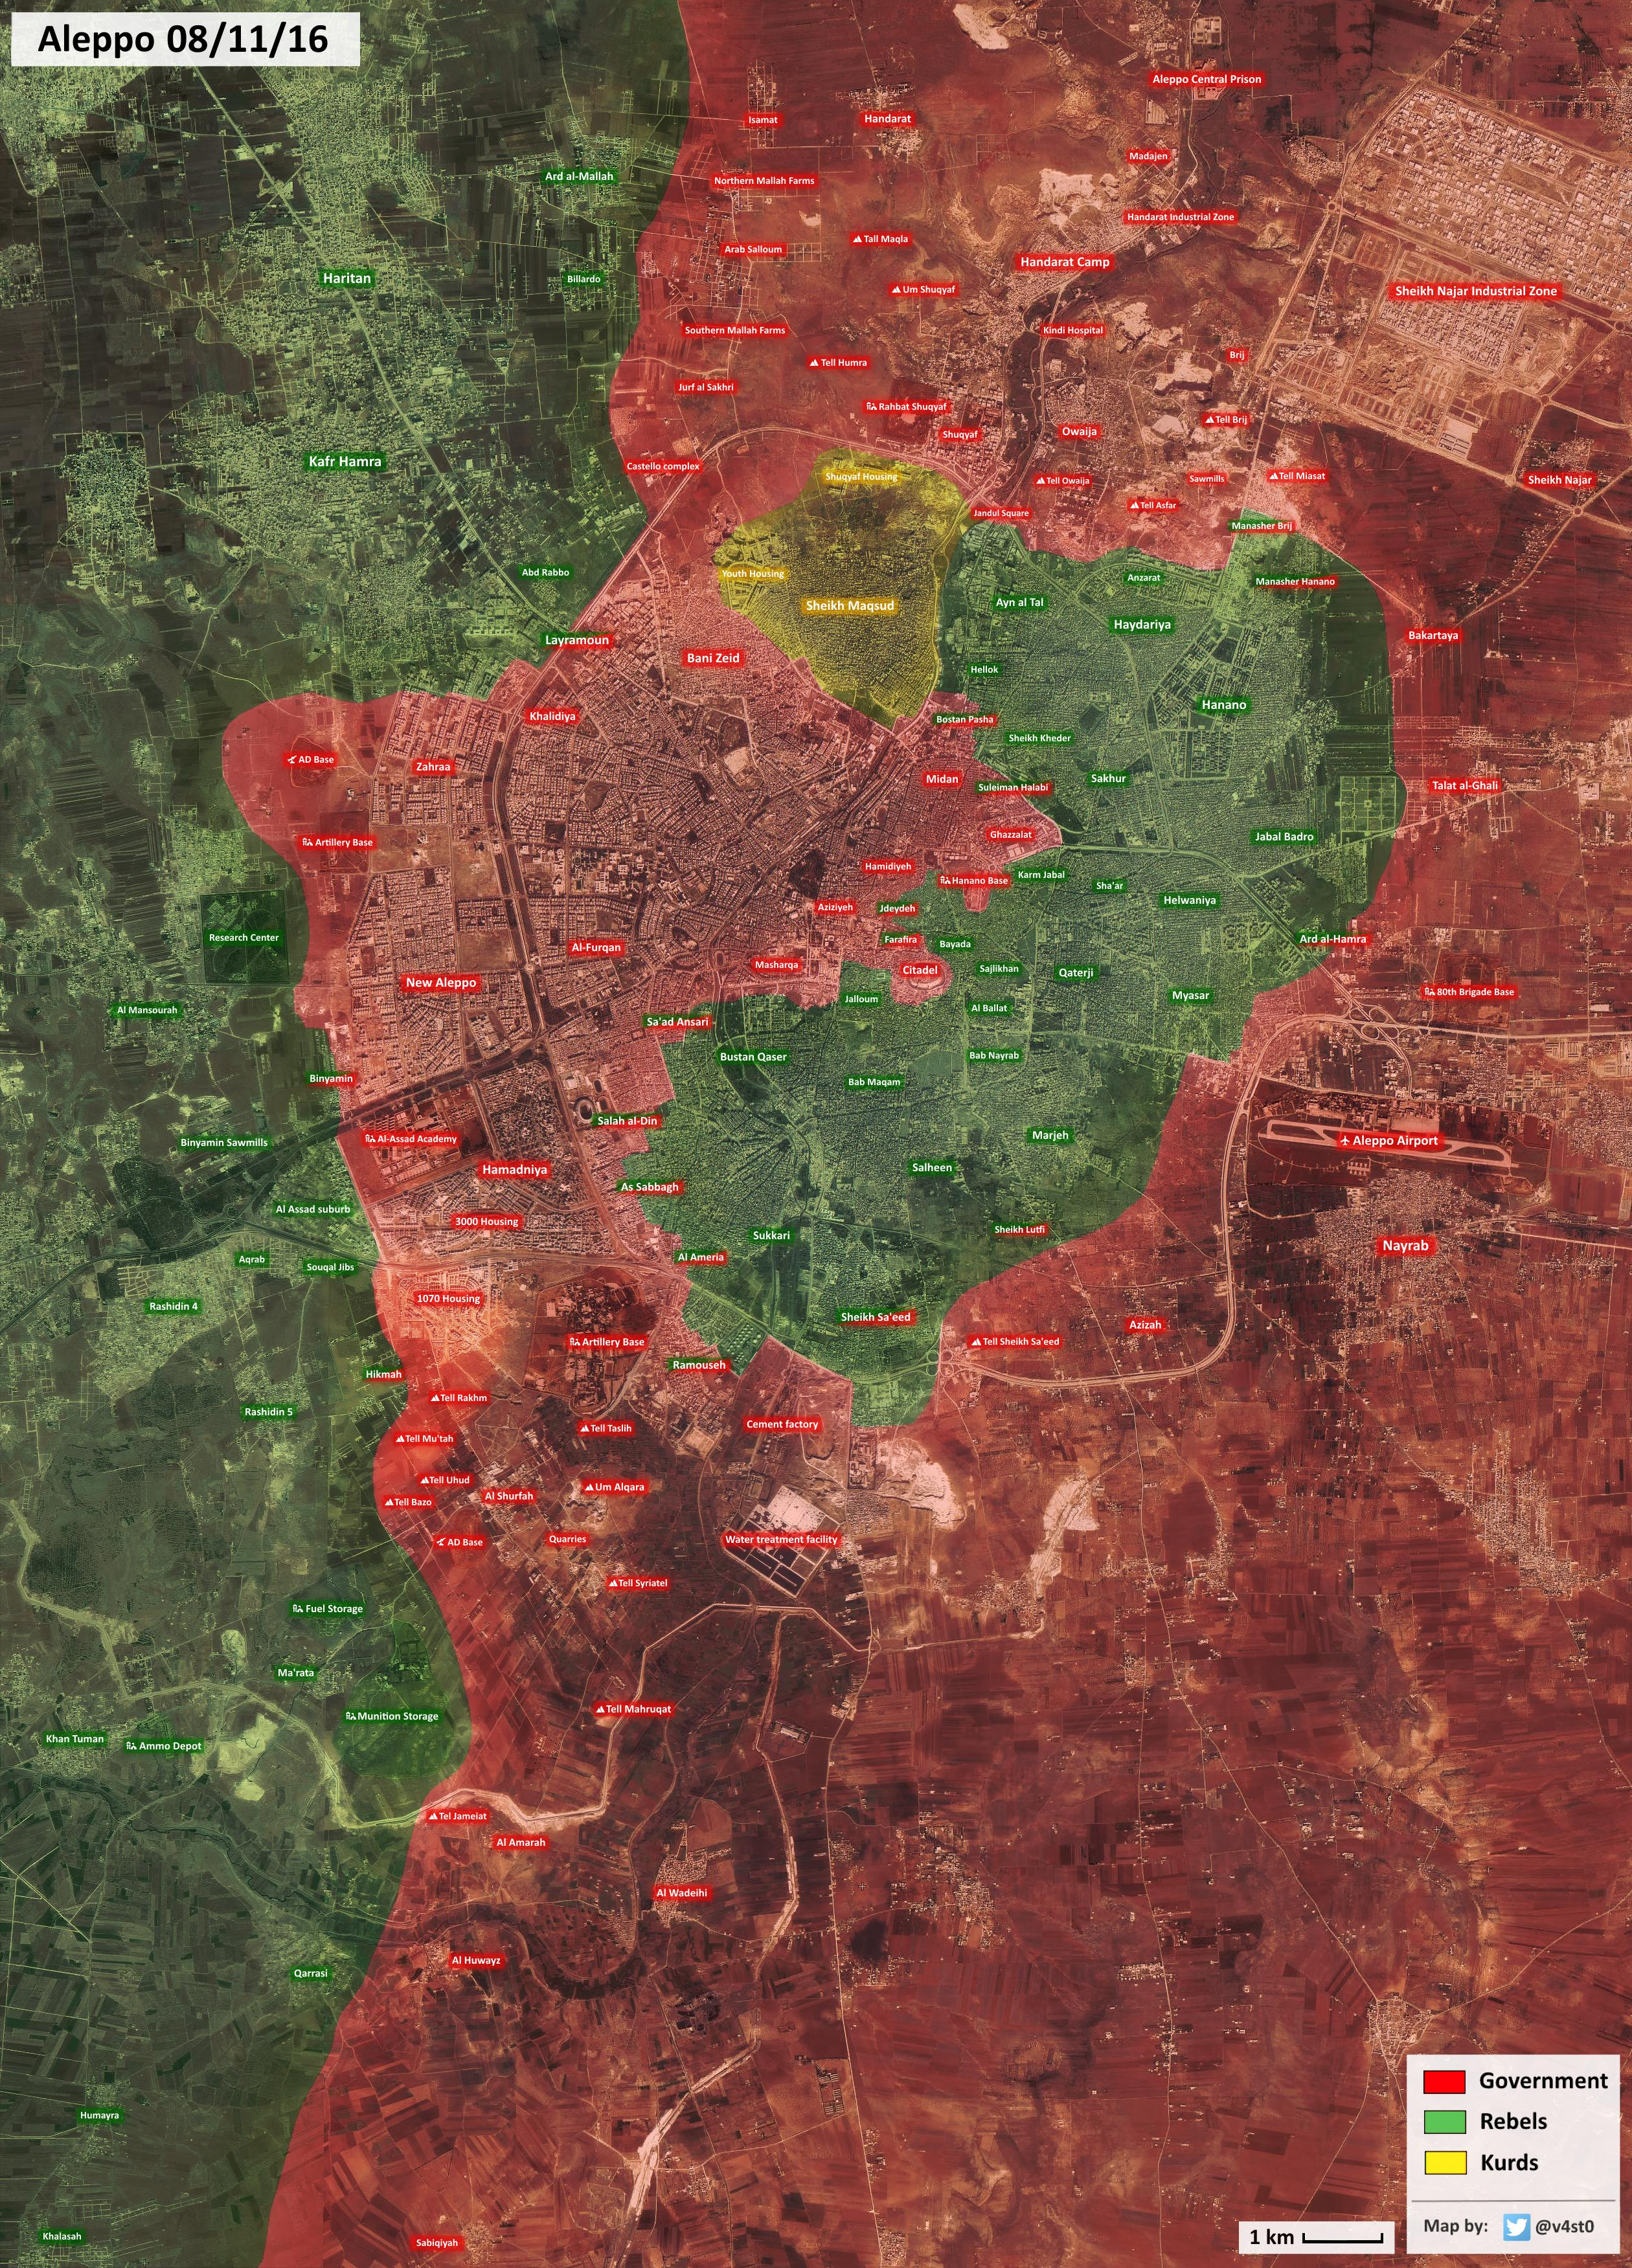 Syrian War Map Update: General Look at Military Situation in Aleppo City on November 8, 2016